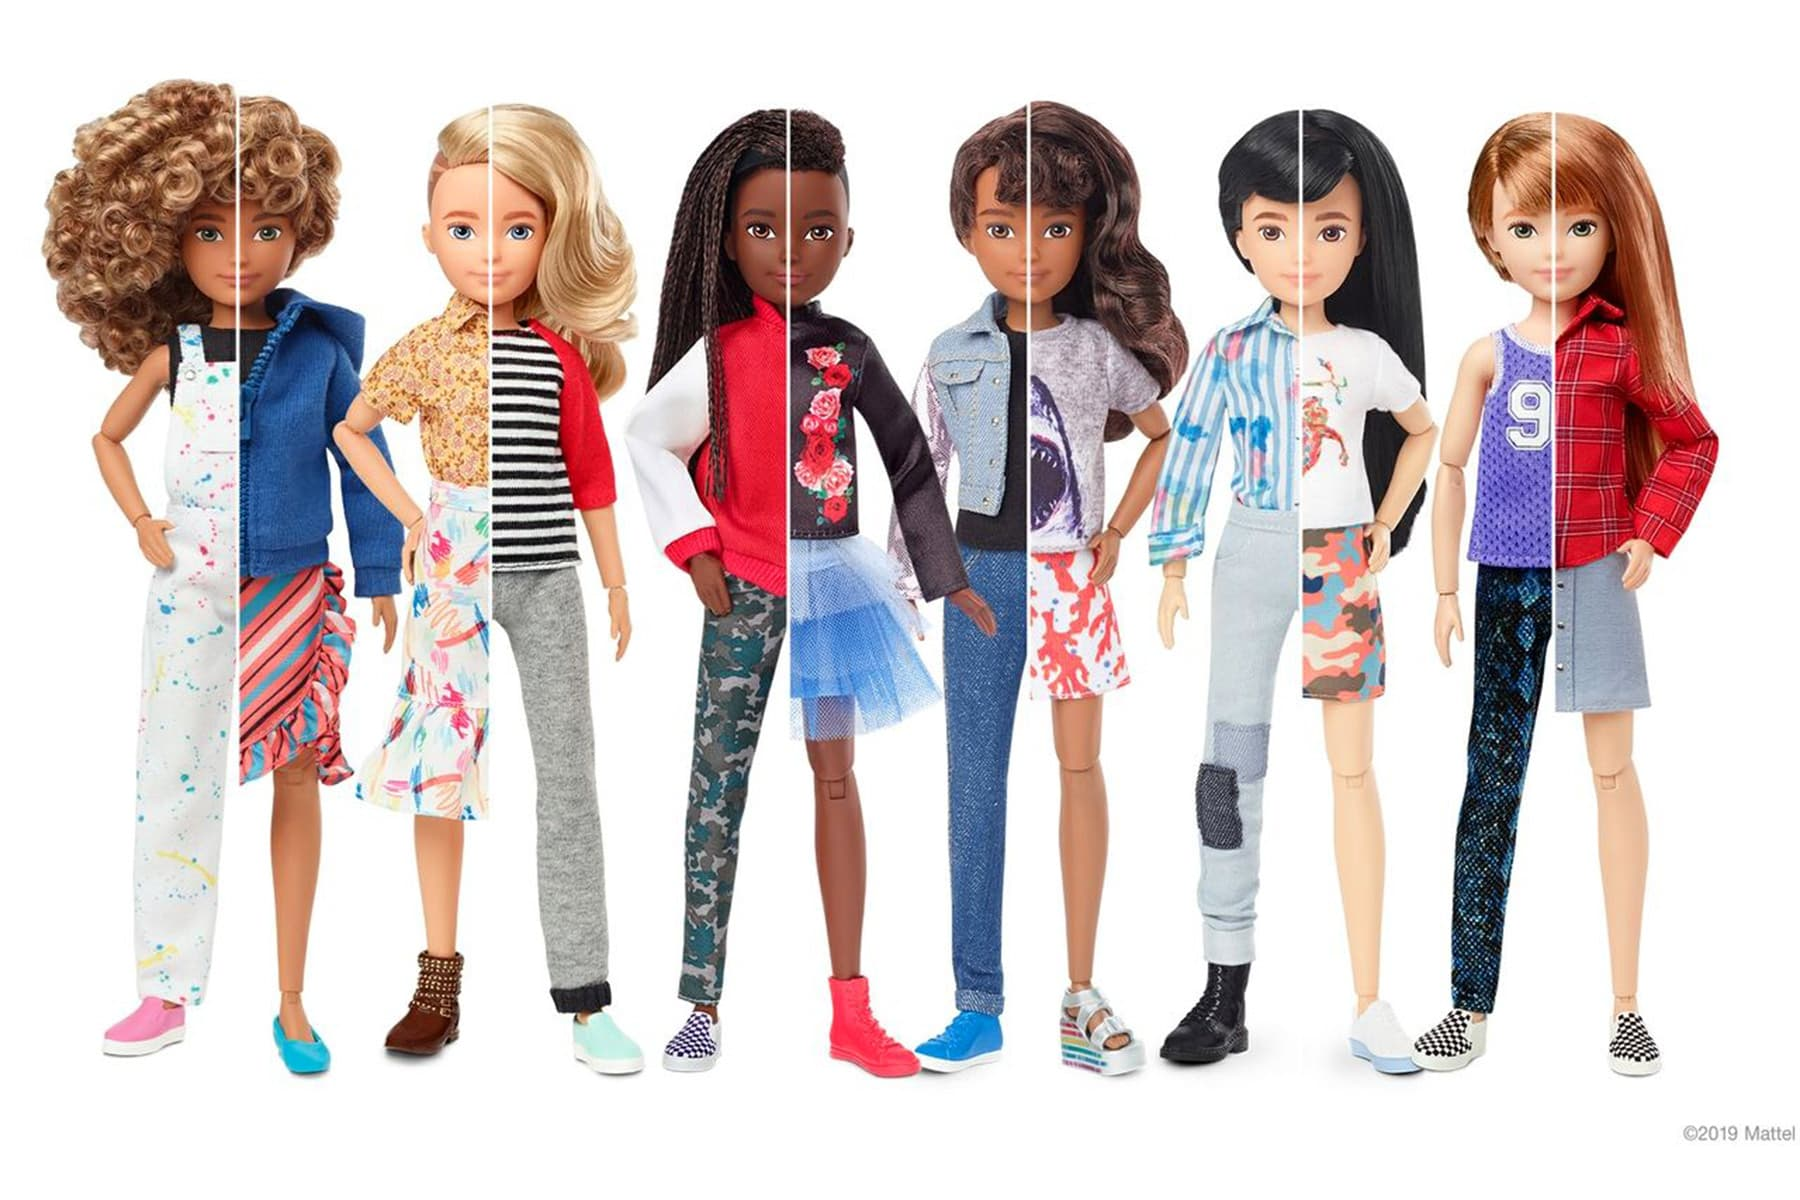 Mattel Offers Gender-Inclusive Doll Collection